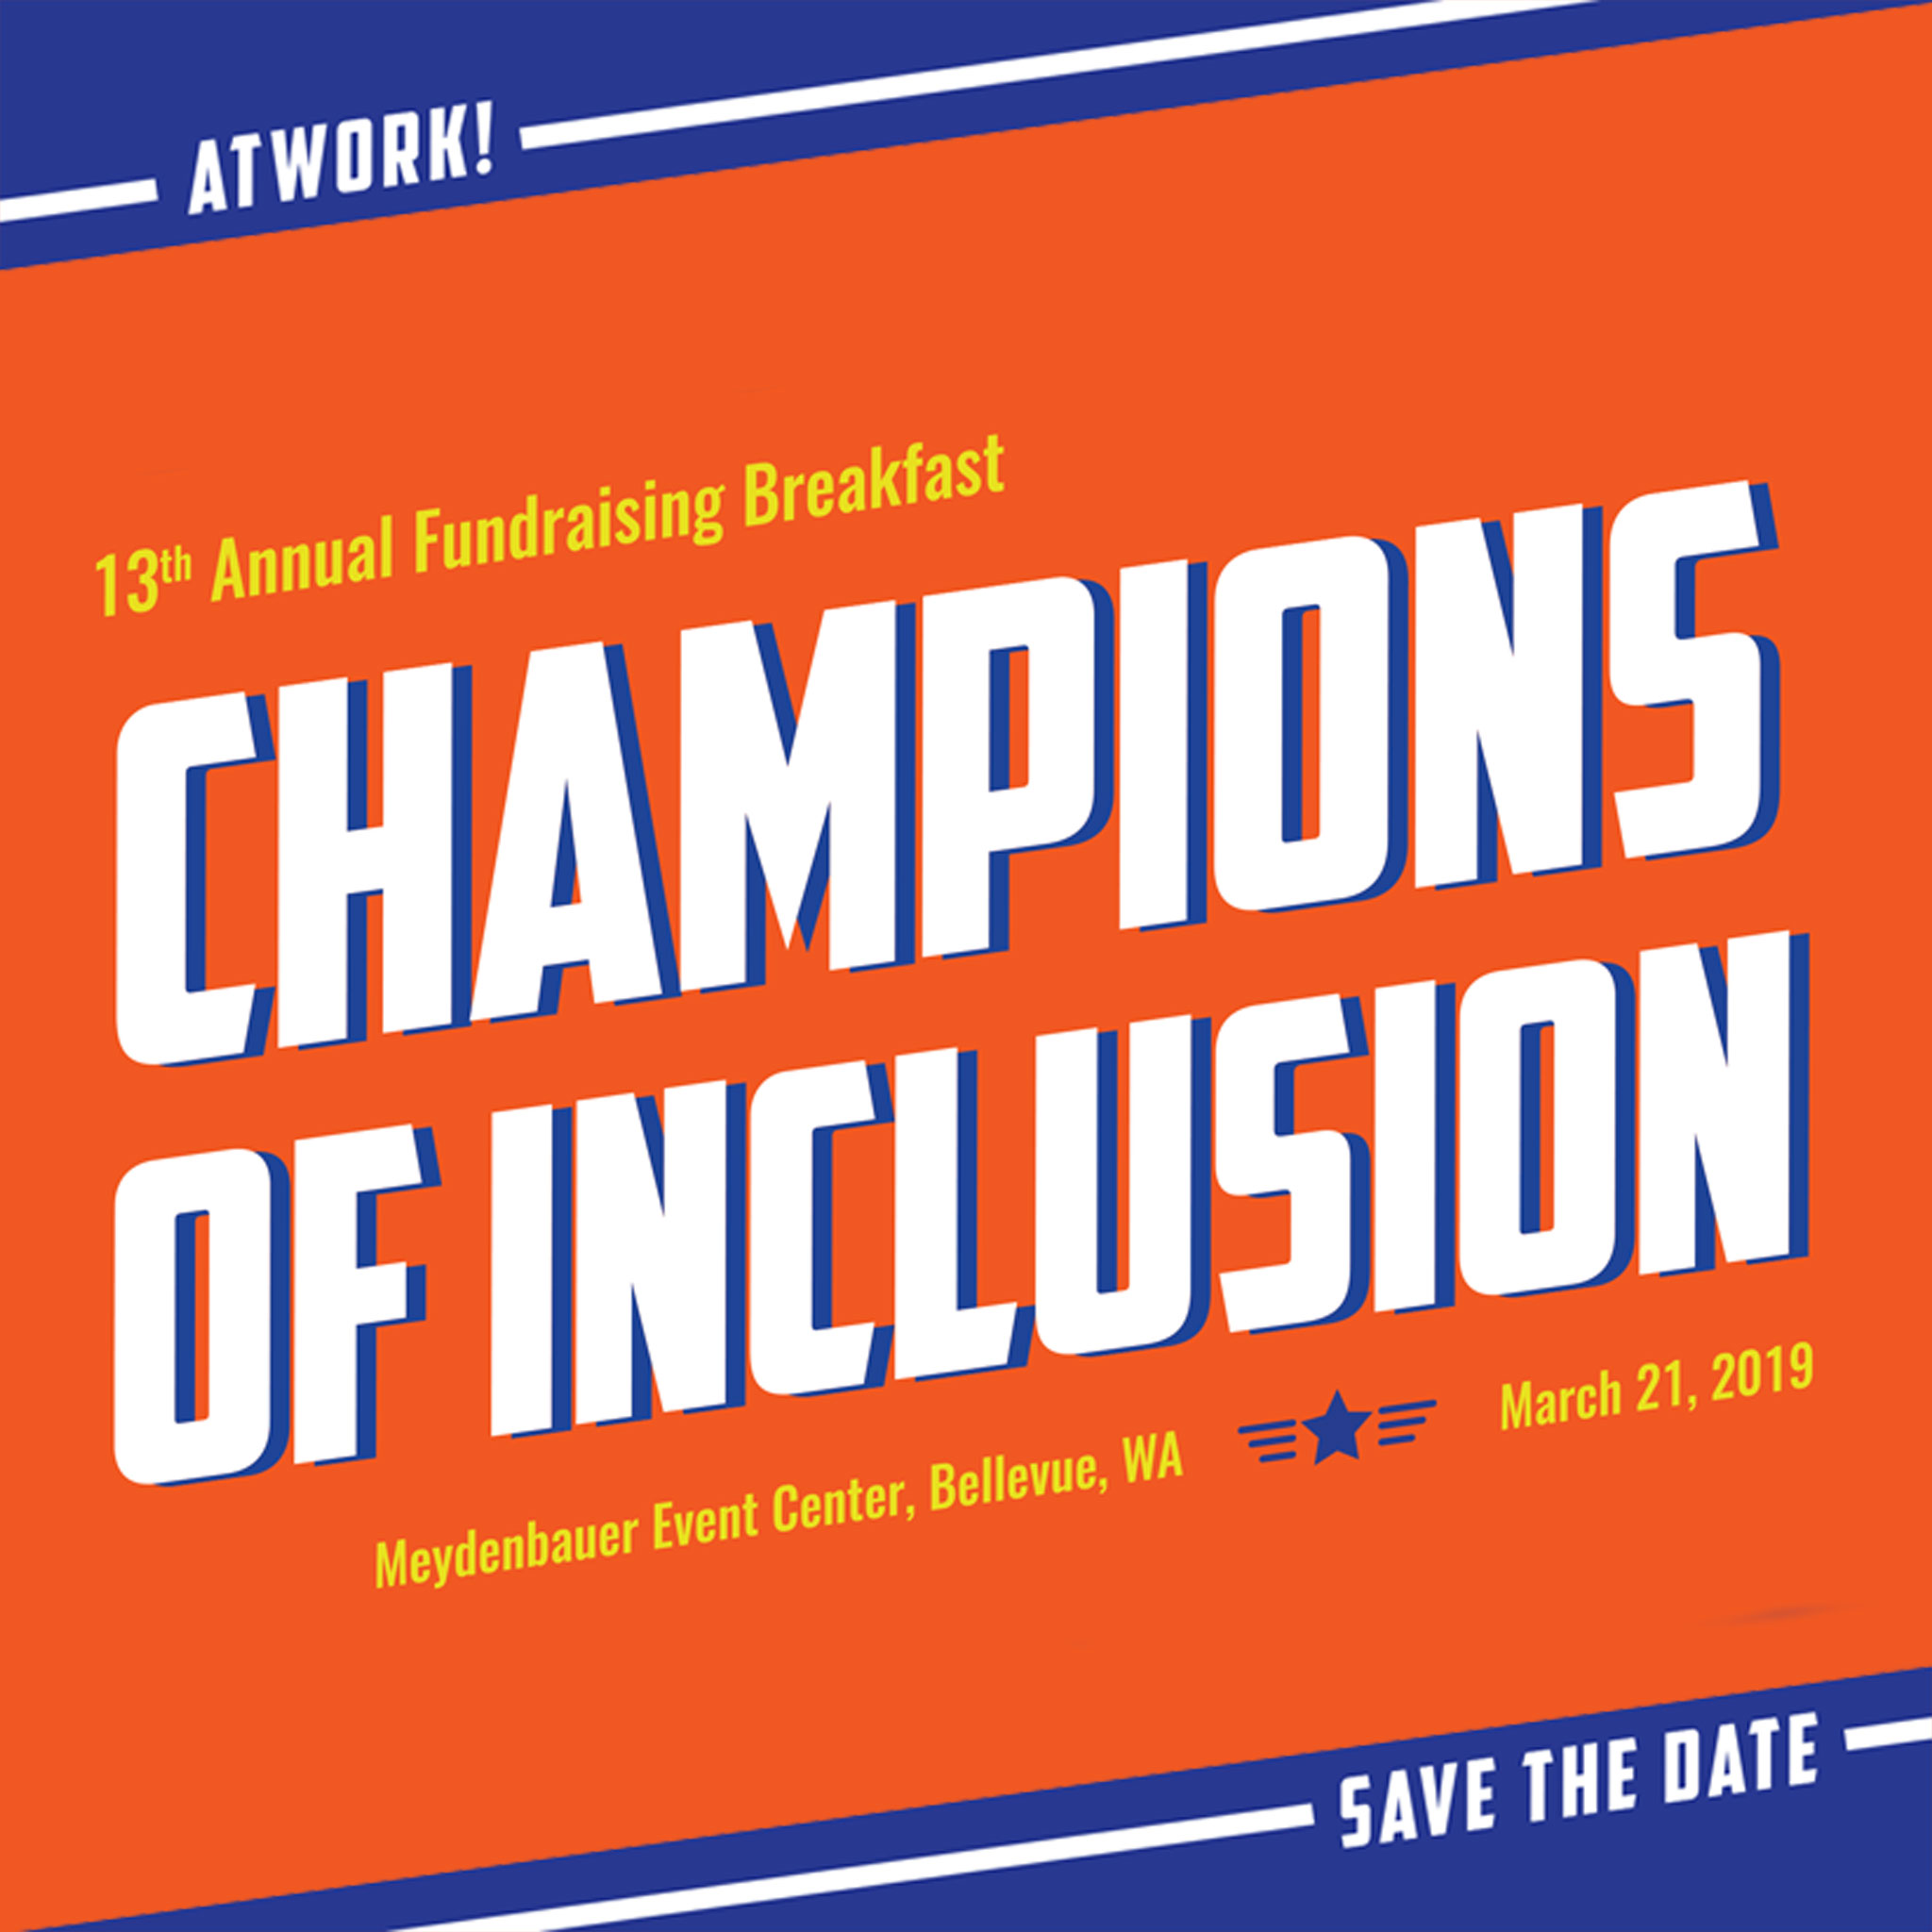 CHAMPIONS OF INCLUSION: AtWork!'s 13th Annual Breakfast Event